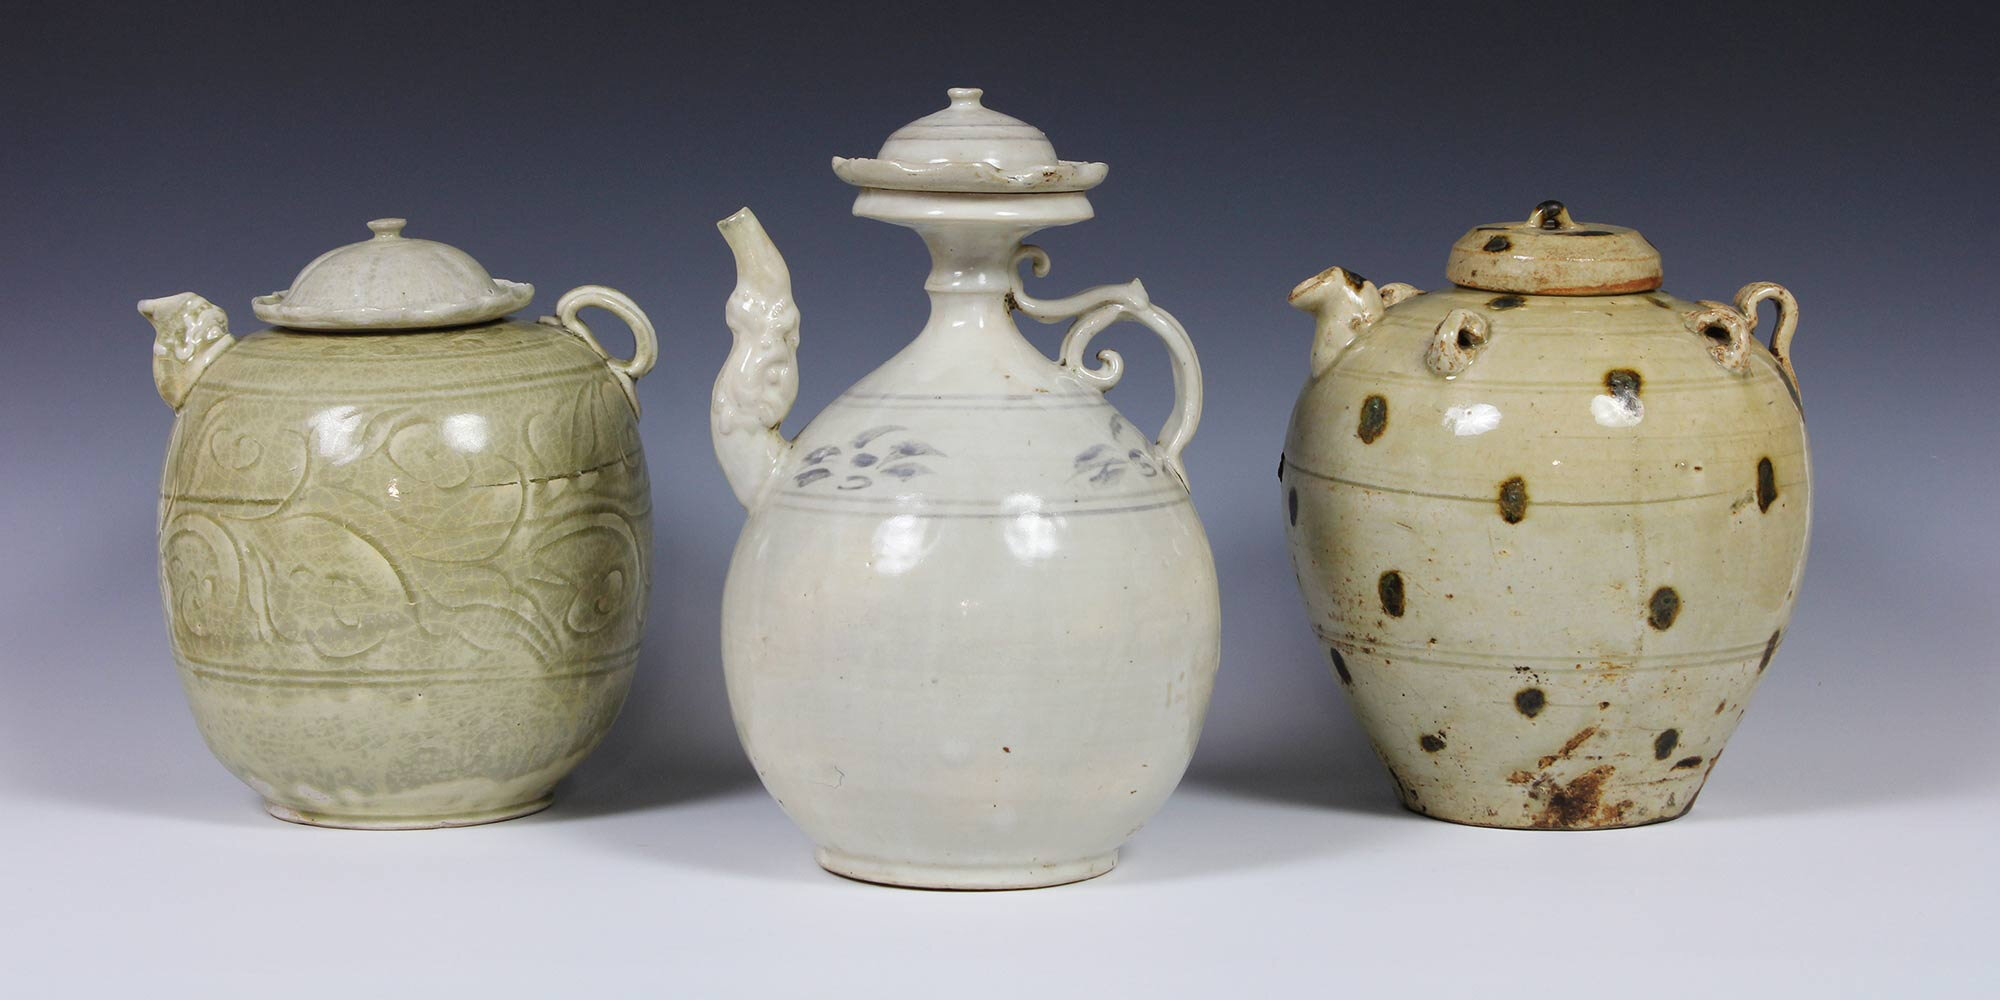 Ewers with lids, stoneware with incised design and celadon glaze, height 20 cm, stoneware with cream and iron underglaze, height 21 cm, stoneware with pale olive-green glaze and iron brown splotches, height 21 cm, Tran dynasty (1225-1400), Vietnam